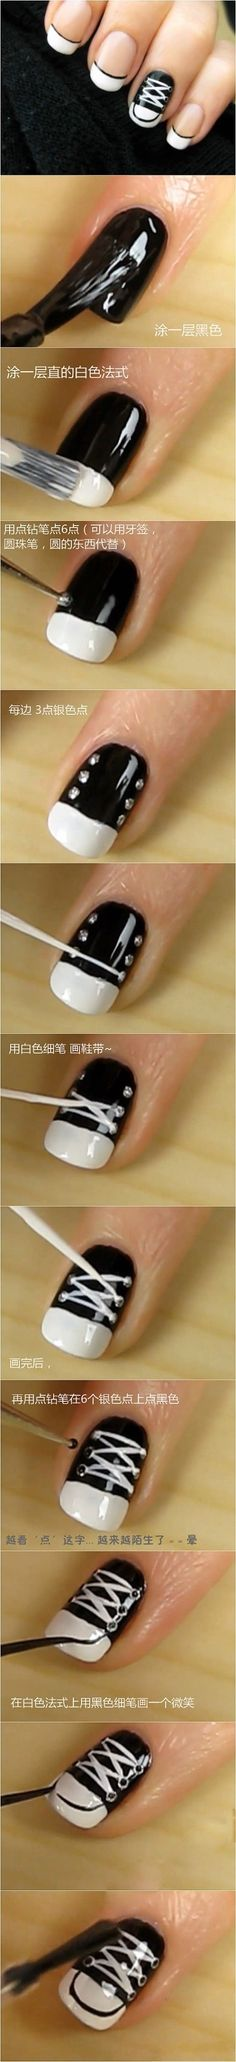 makes sense to do the chucks on one accent nail on each hand - then you have just a pair of shoes :D